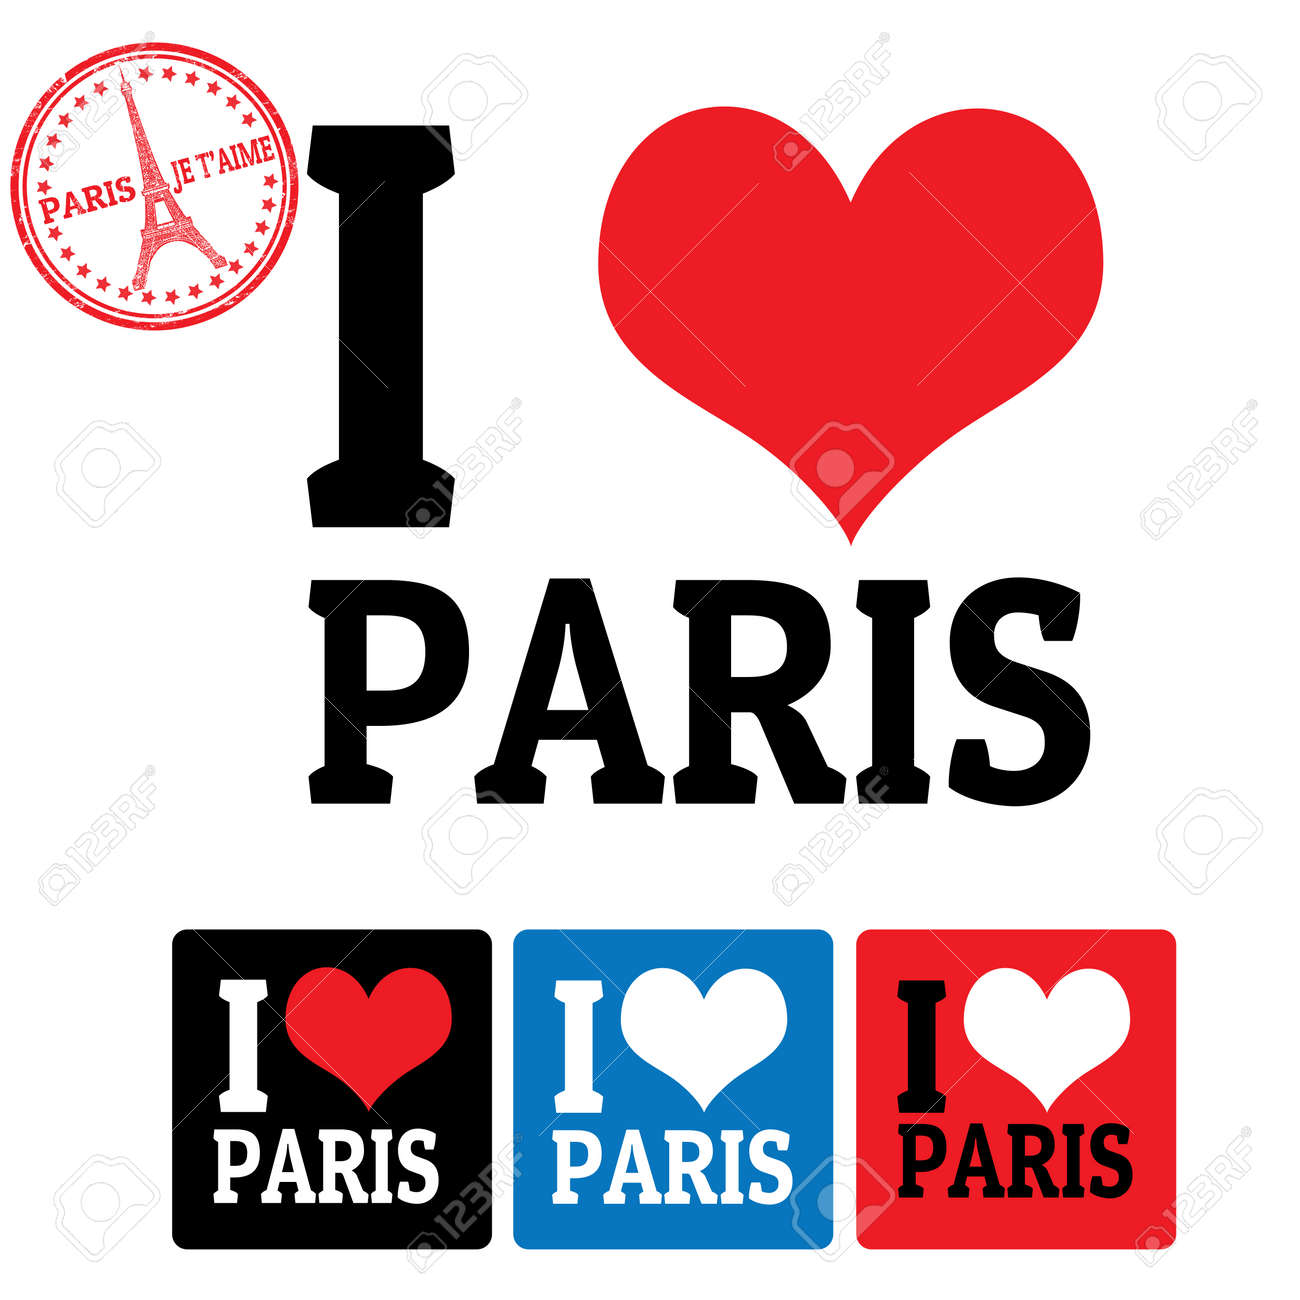 I love Paris sign and labels on white background, vector illustration Stock Vector - 22509742